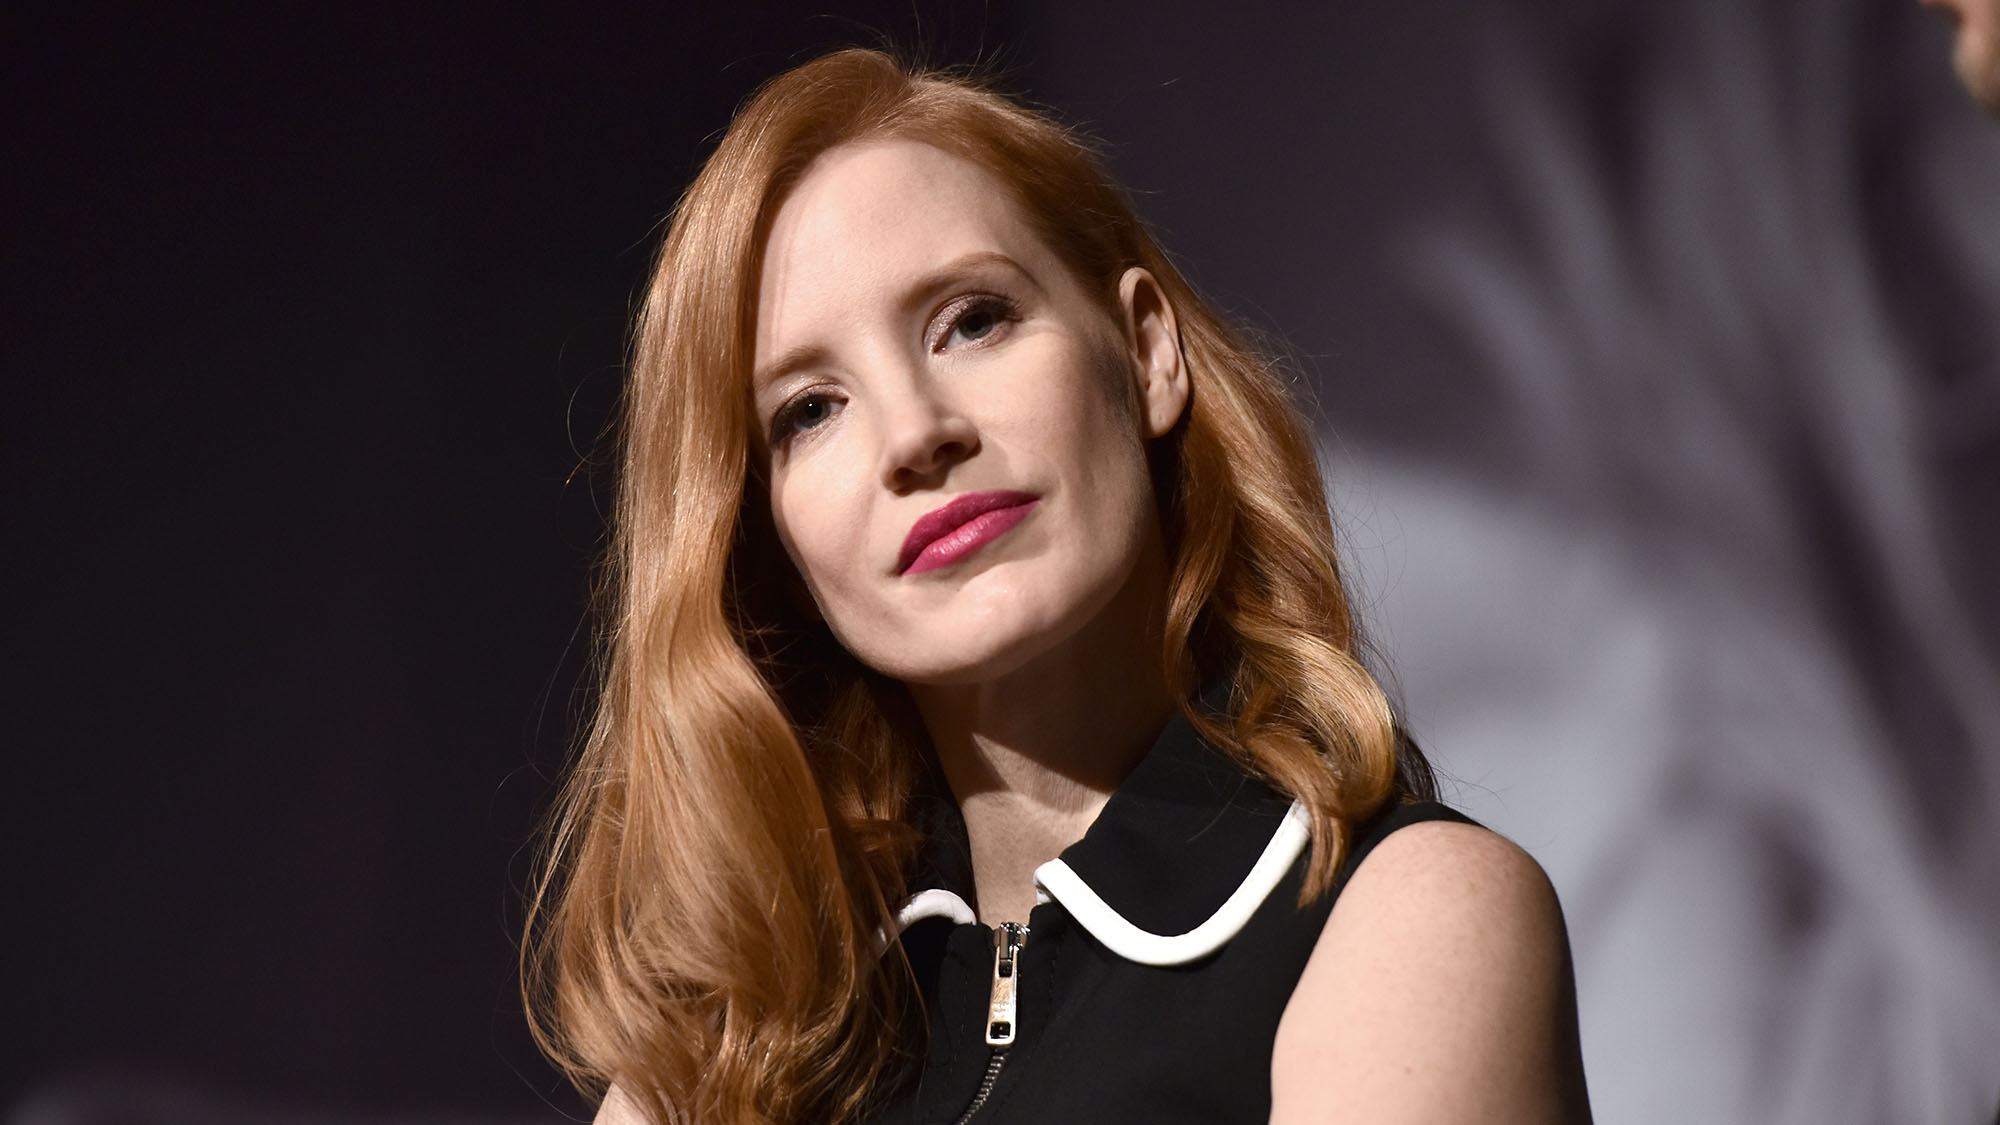 Jessica Chastain only wants to play powerful film roles thank you very much